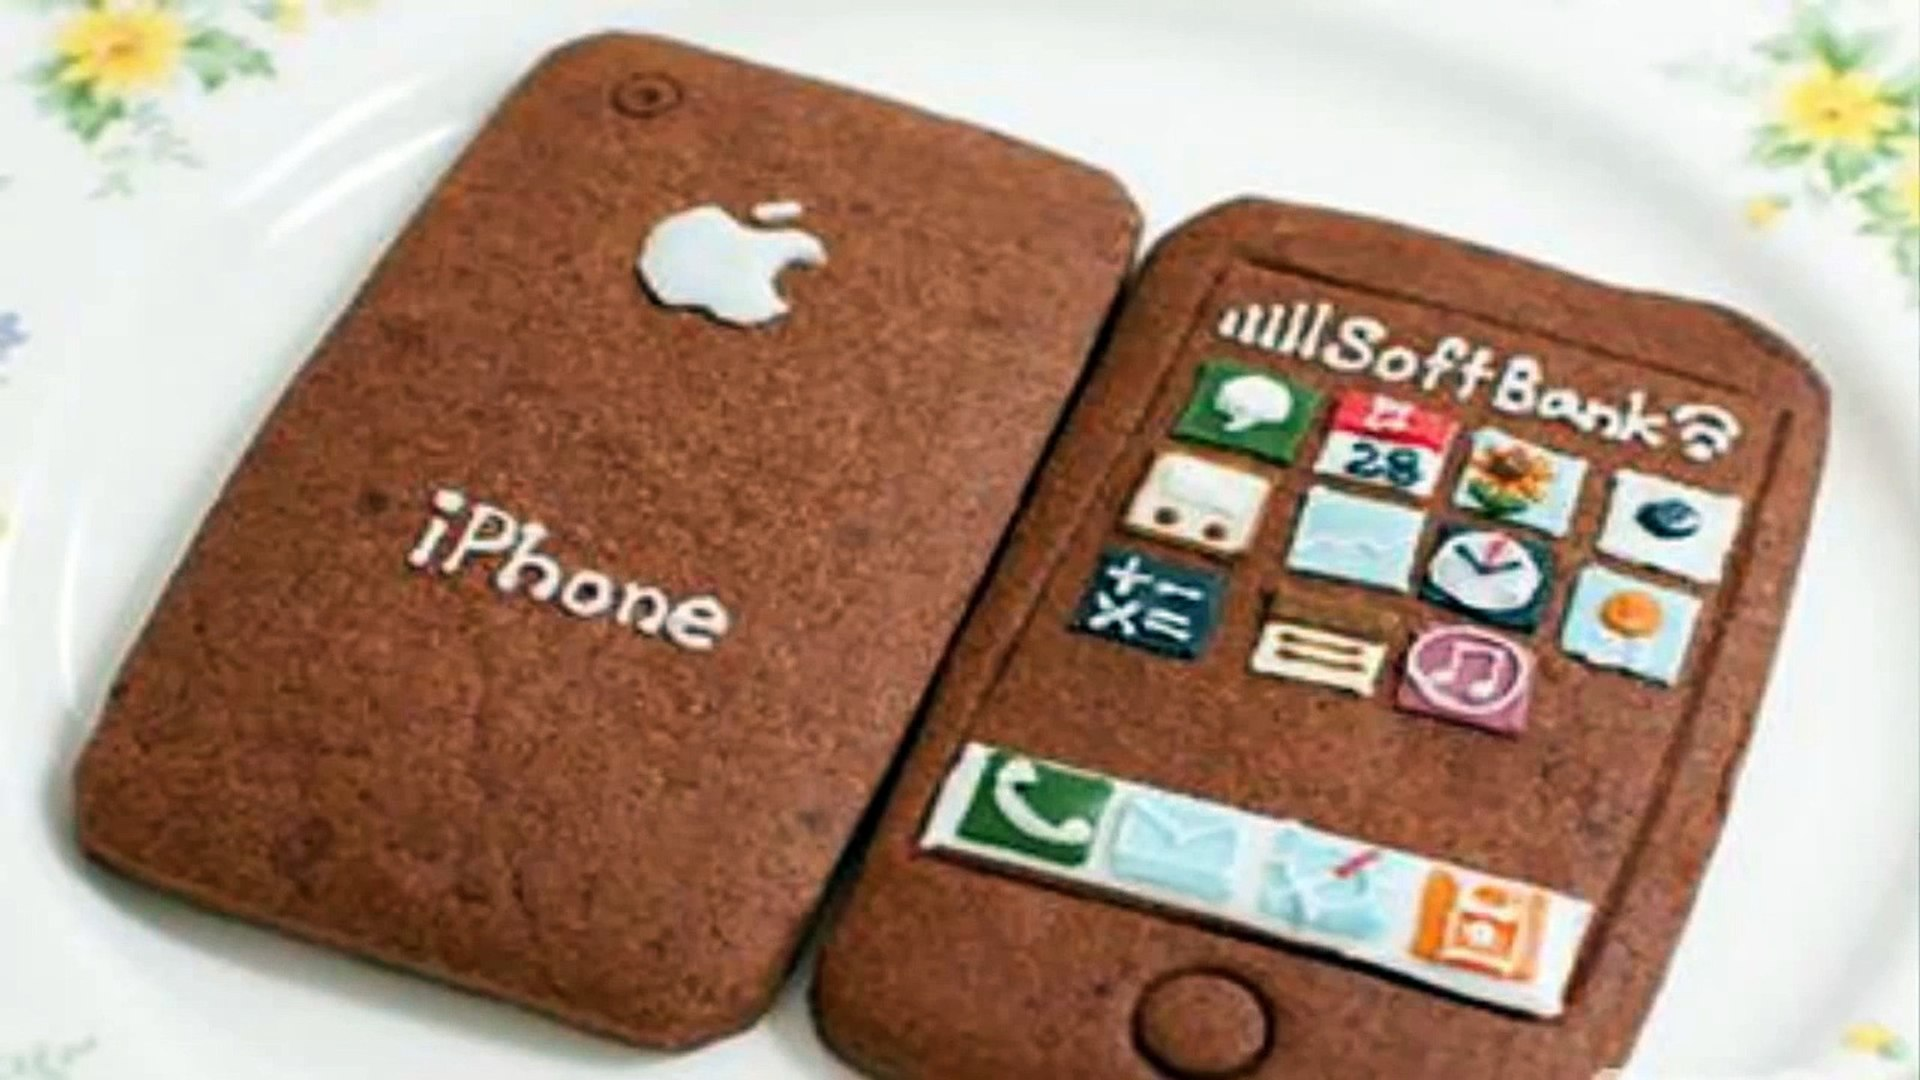 COMER UN IPHONE. Iphone comestible